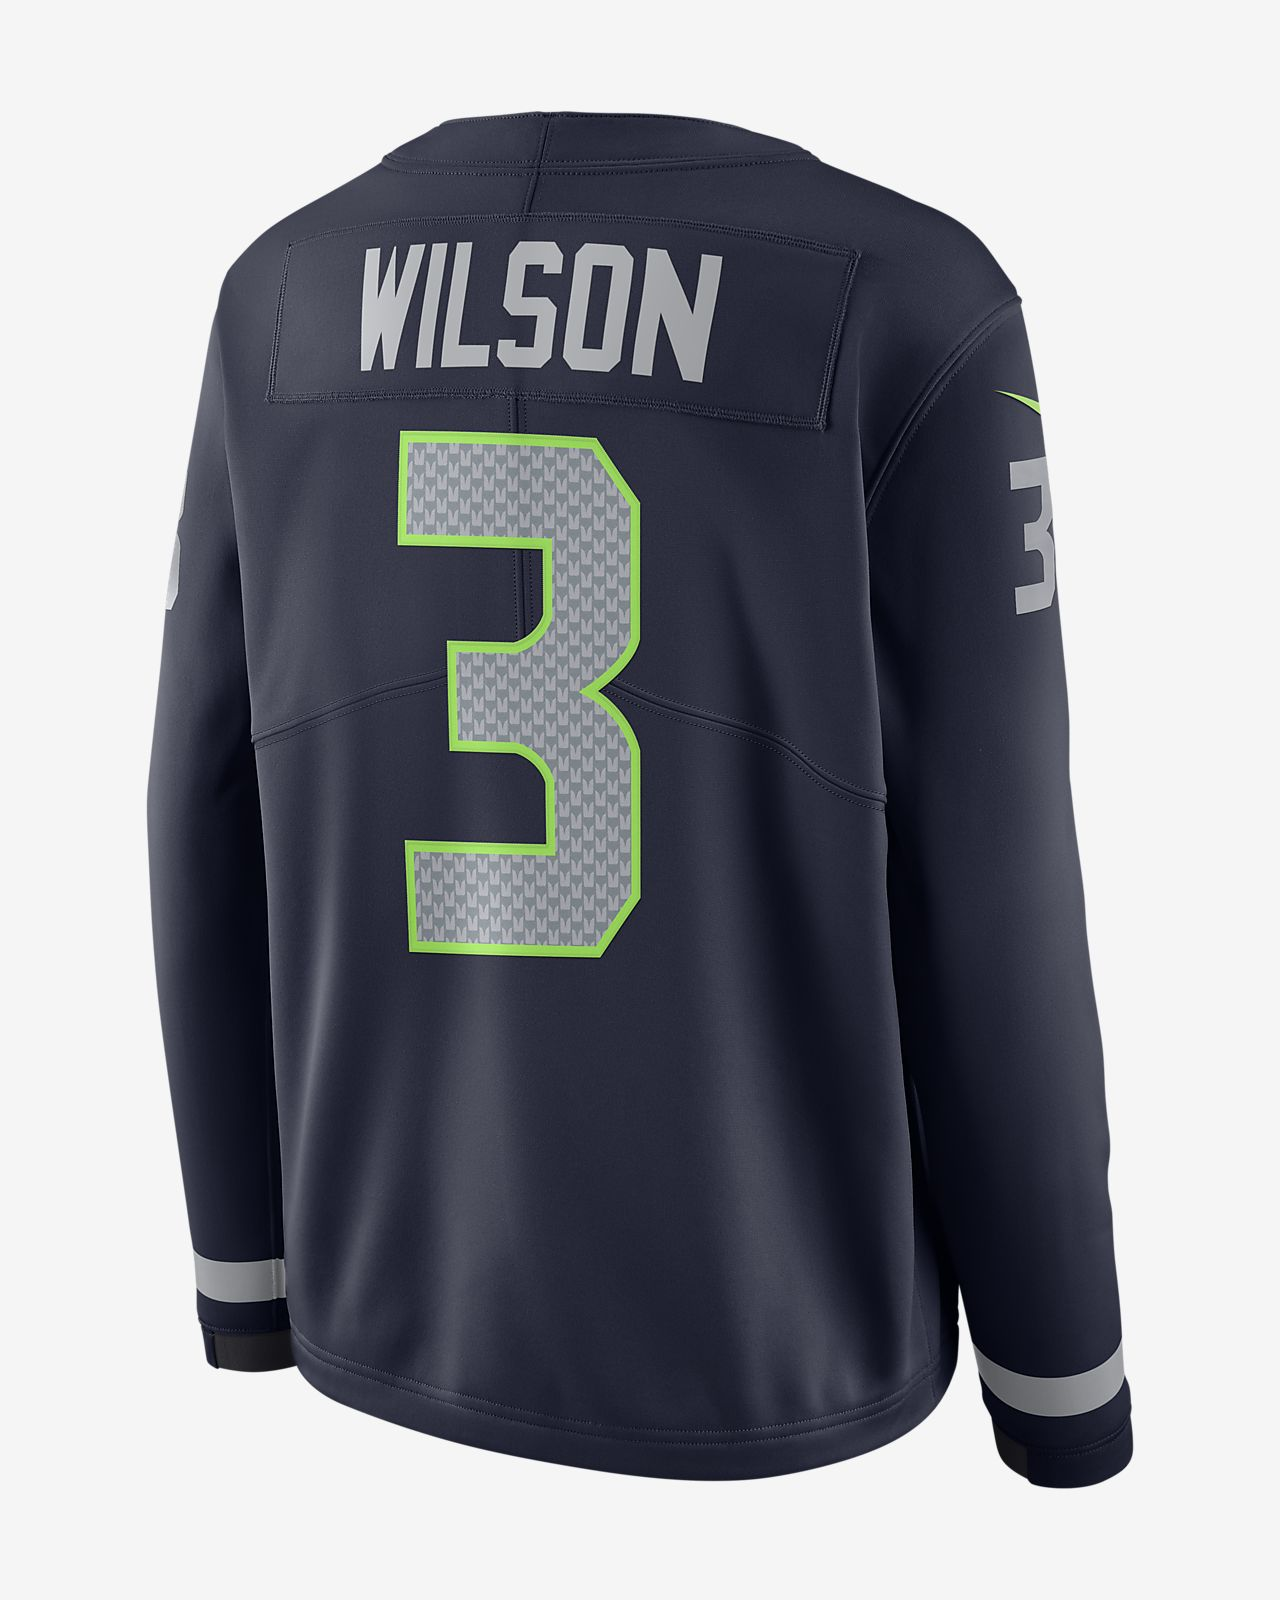 New NFL Seattle Seahawks Jersey (Russell Wilson) Women's Long Sleeve  hot sale